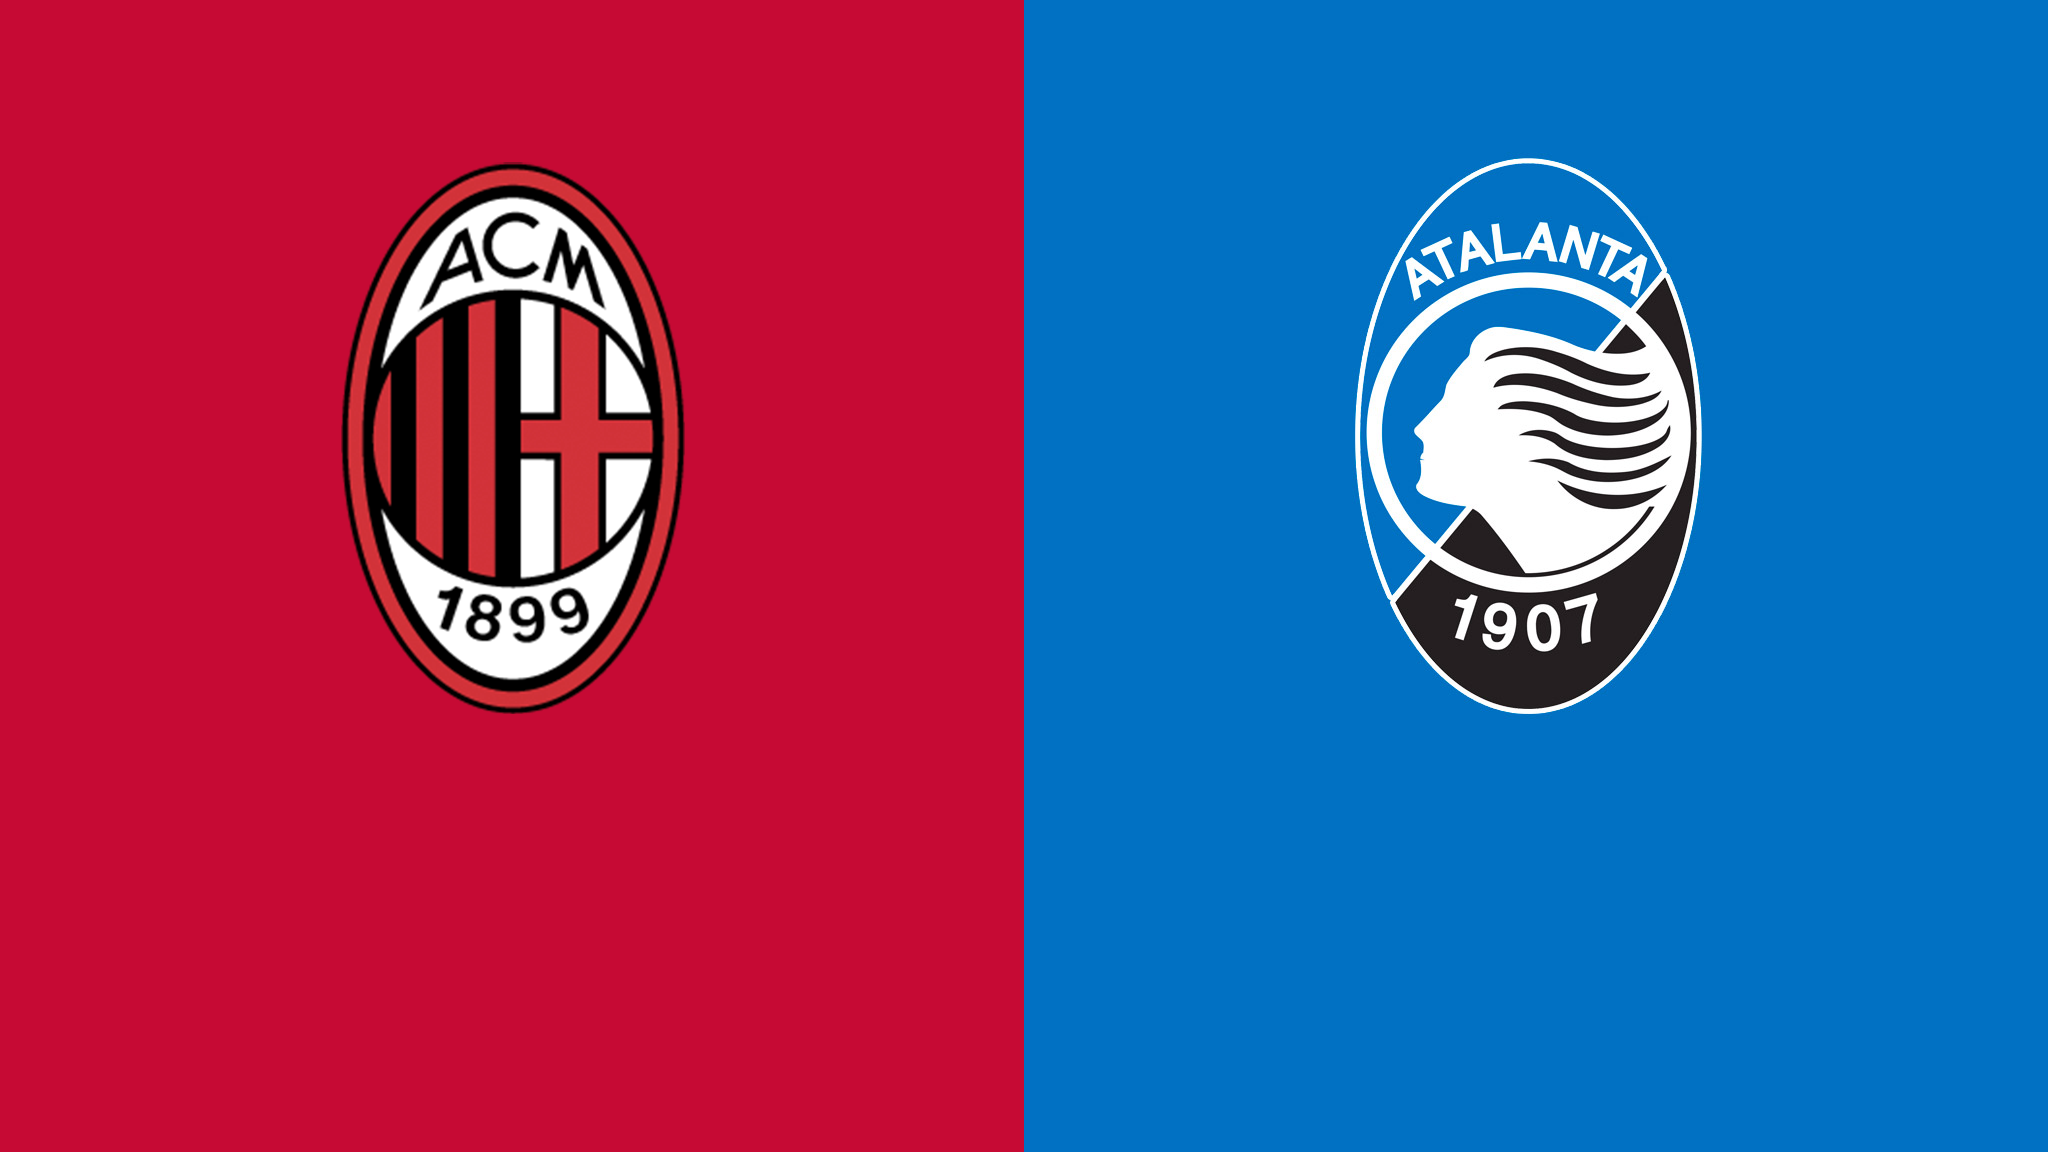 Saturday, 23 January 2021 AC MILAN